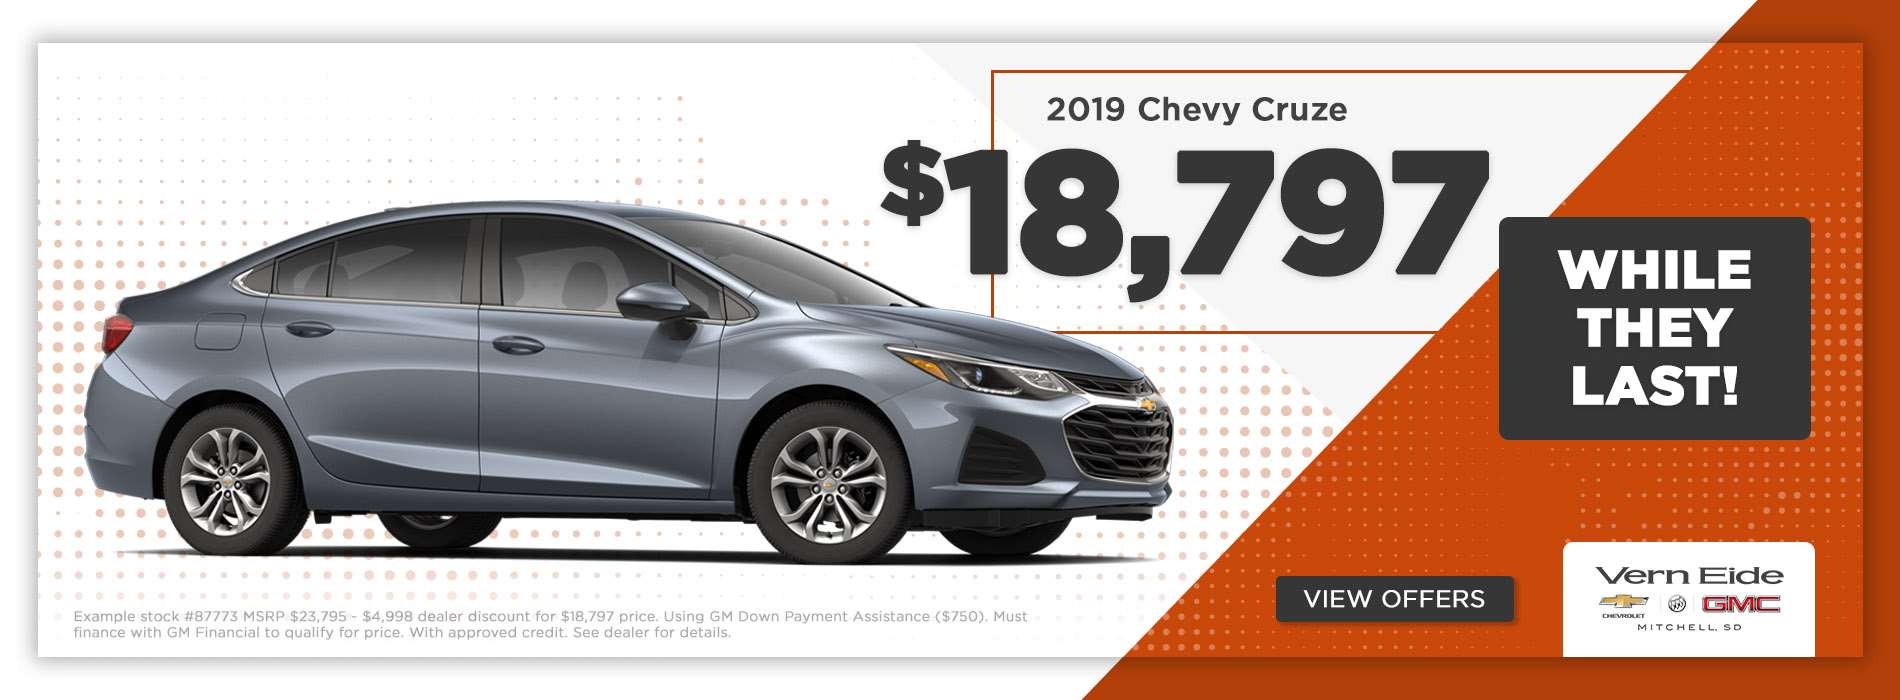 GM - Cruze Offer - May 2019